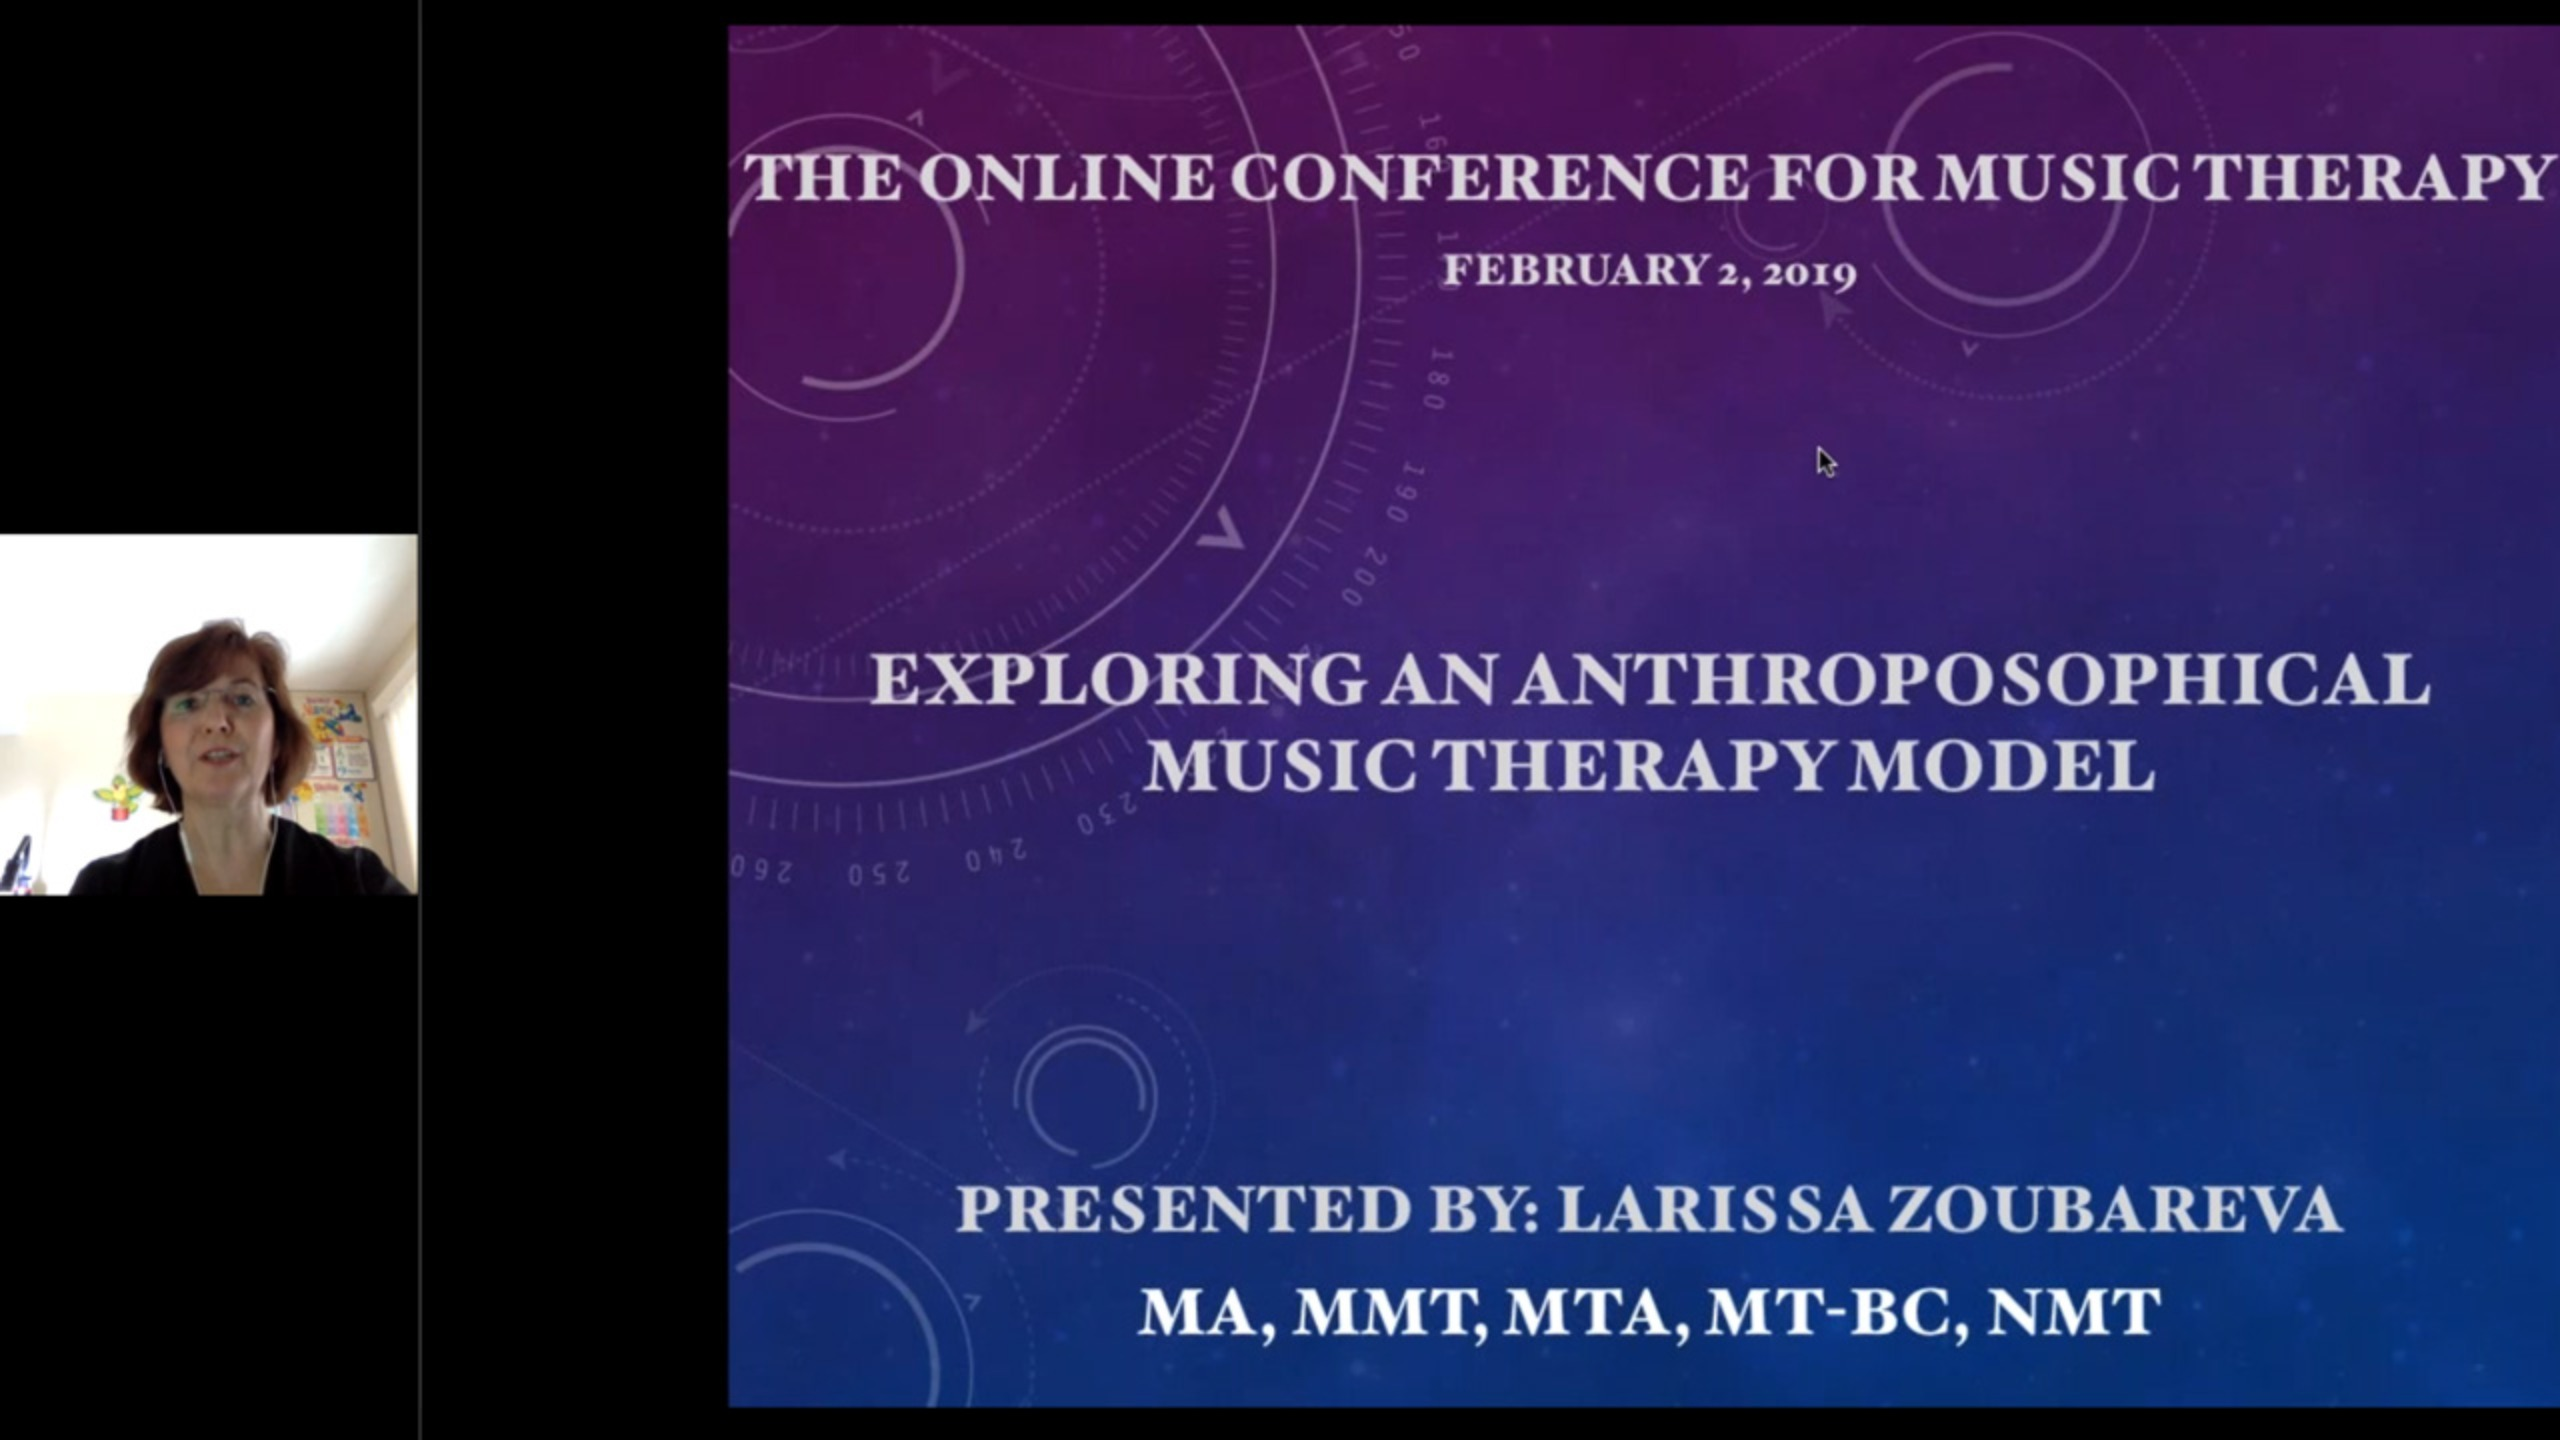 Exploring an Anthroposophical Music Therapy Model